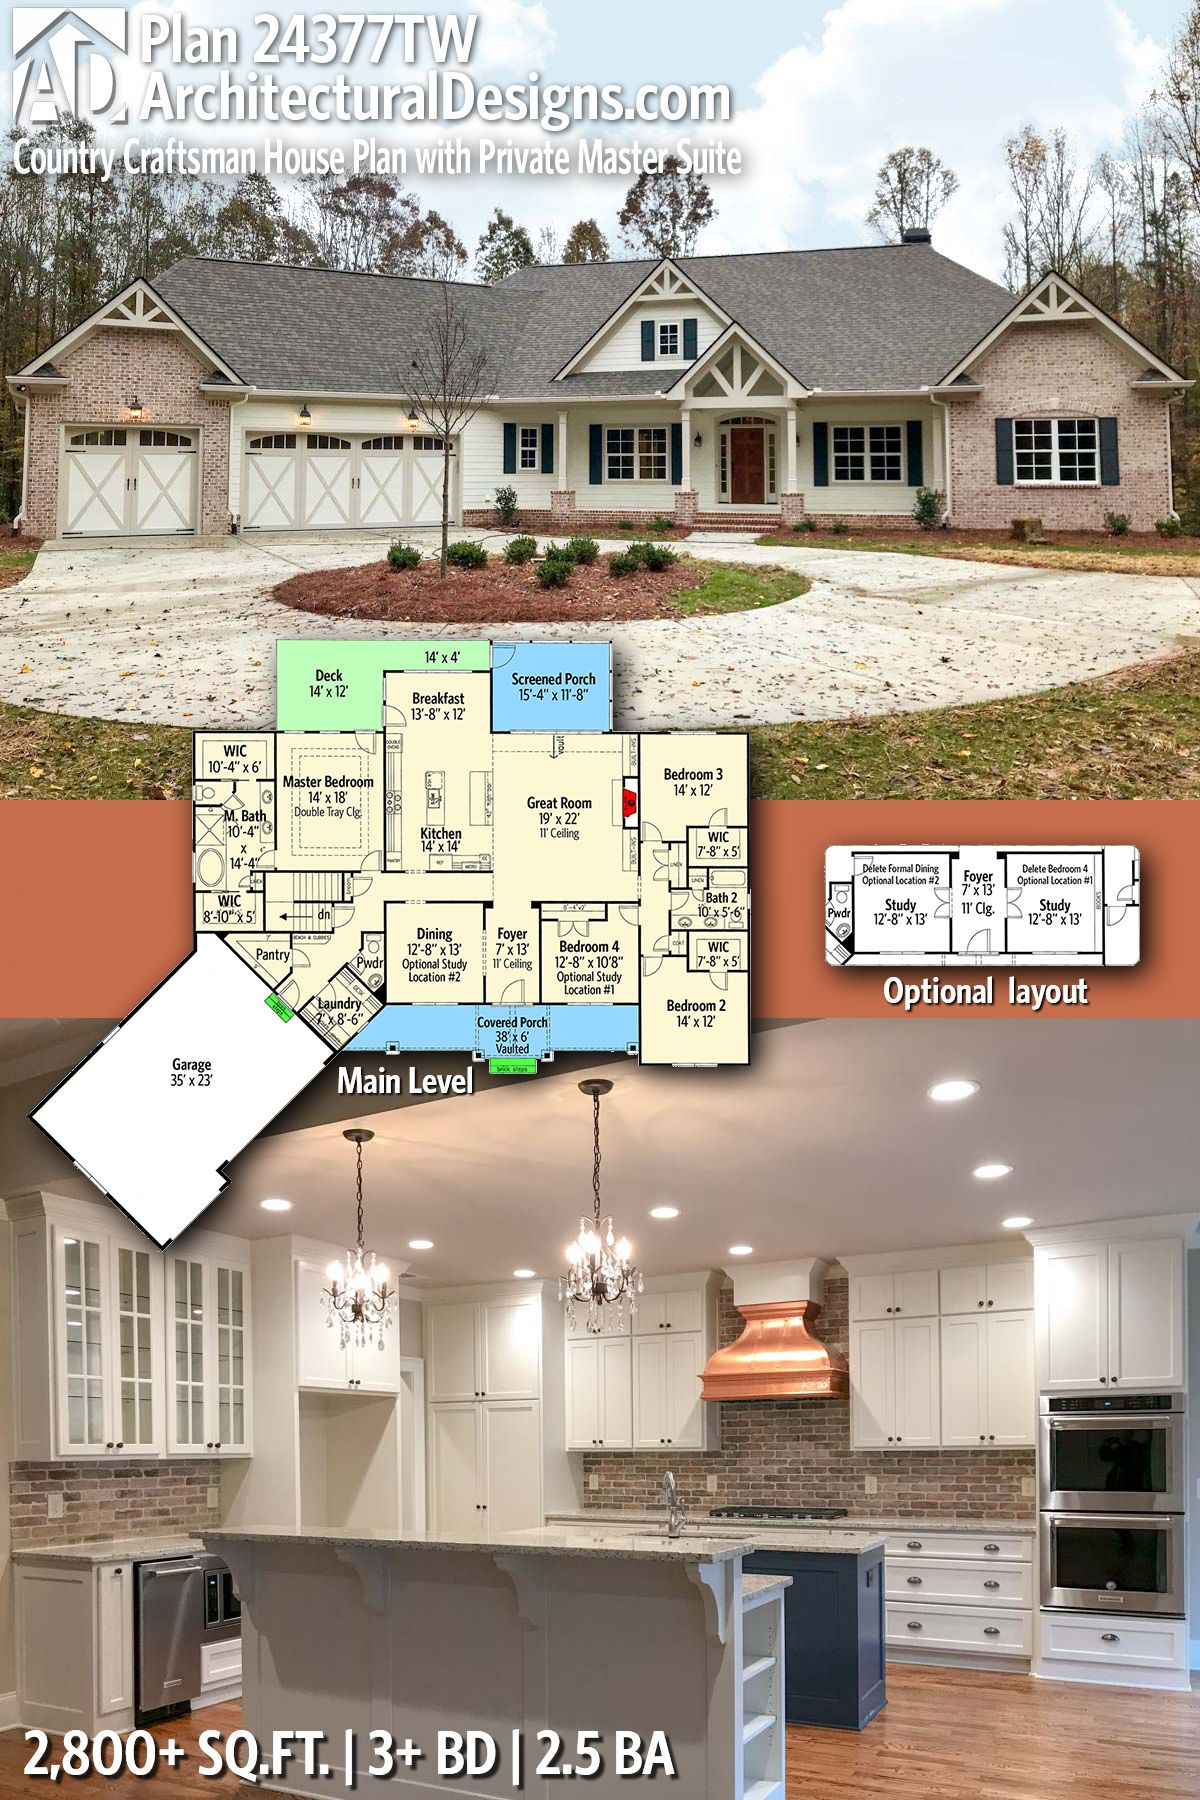 5 master bedroom house plans  Architectural Designs Plan TW has  beds and  baths and